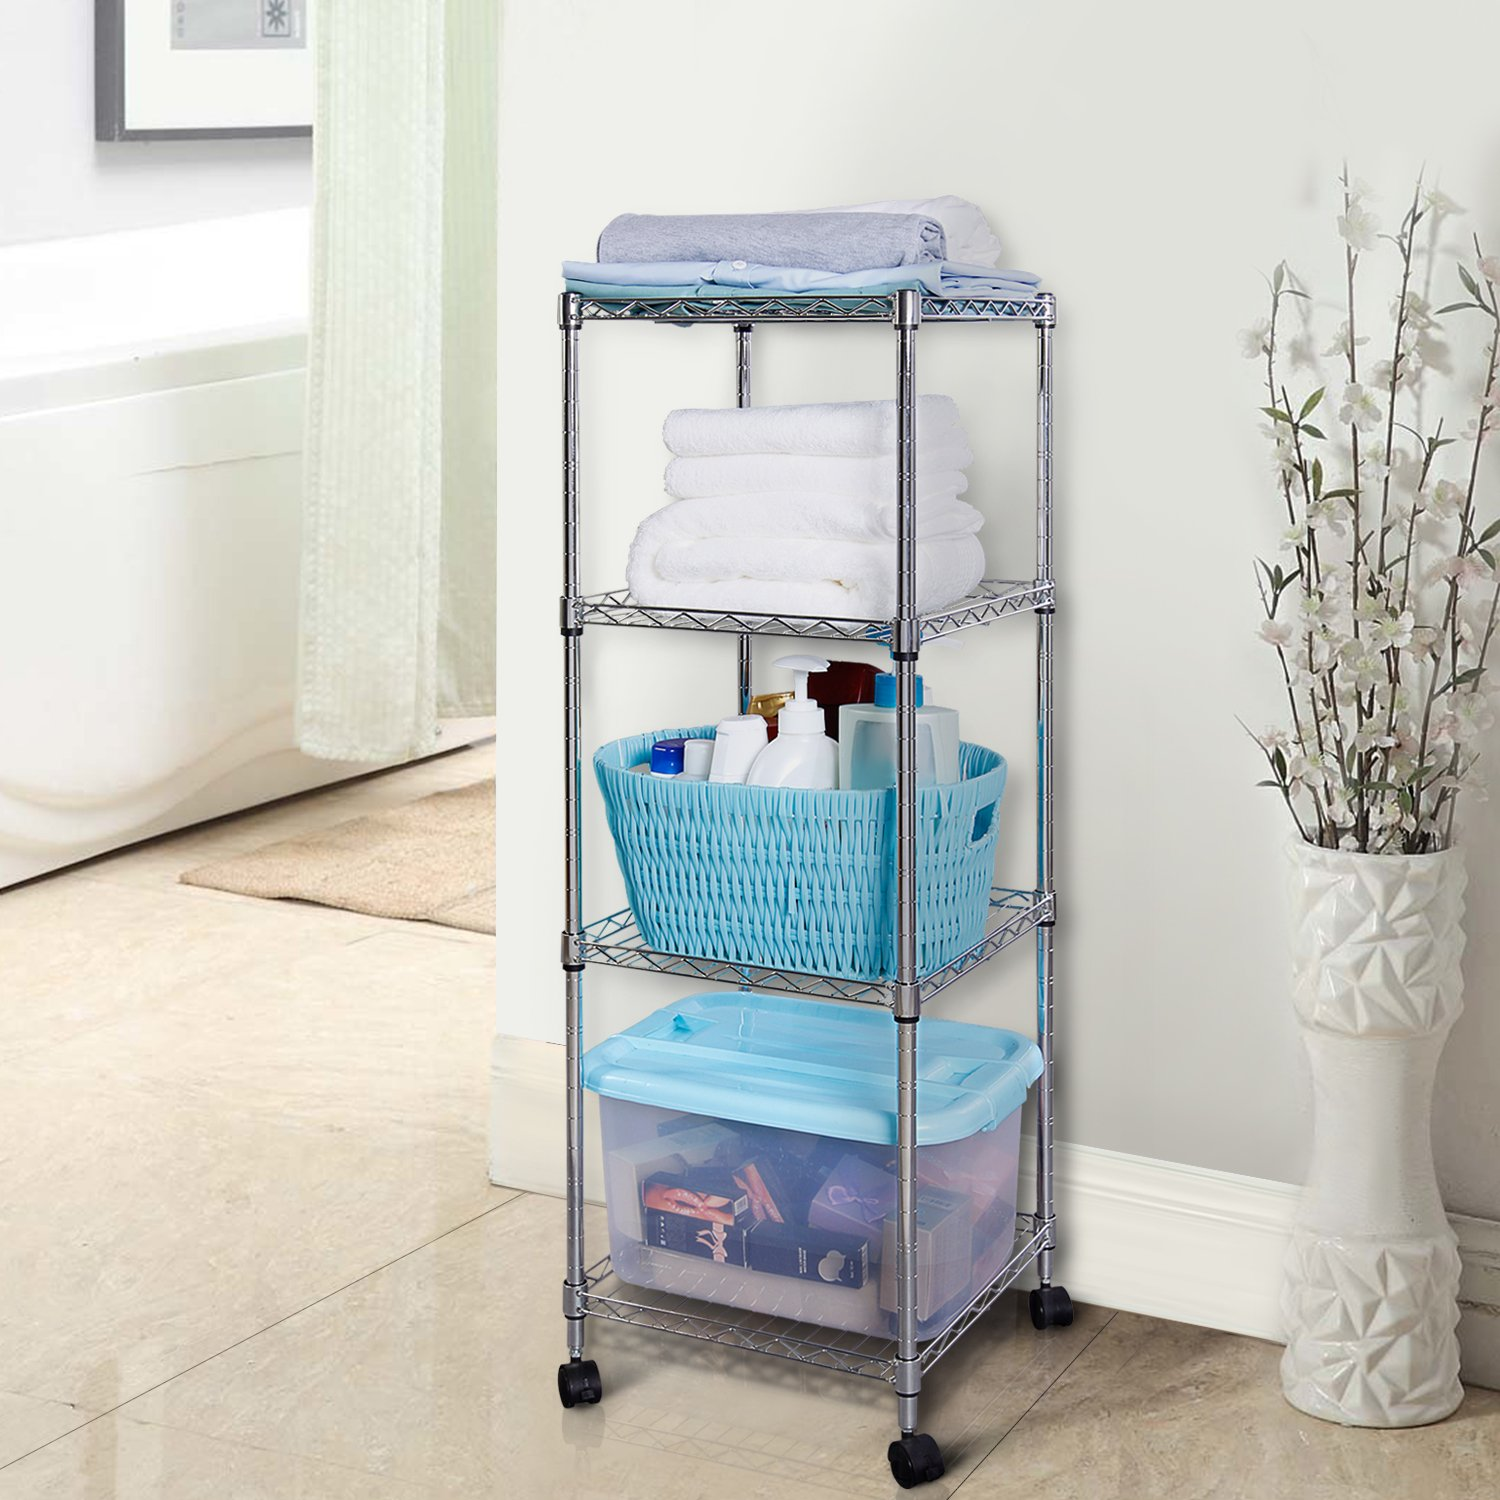 Lifewit 4 Tiers Wire Shelving Unit on Wheels, Adjustable Square ...